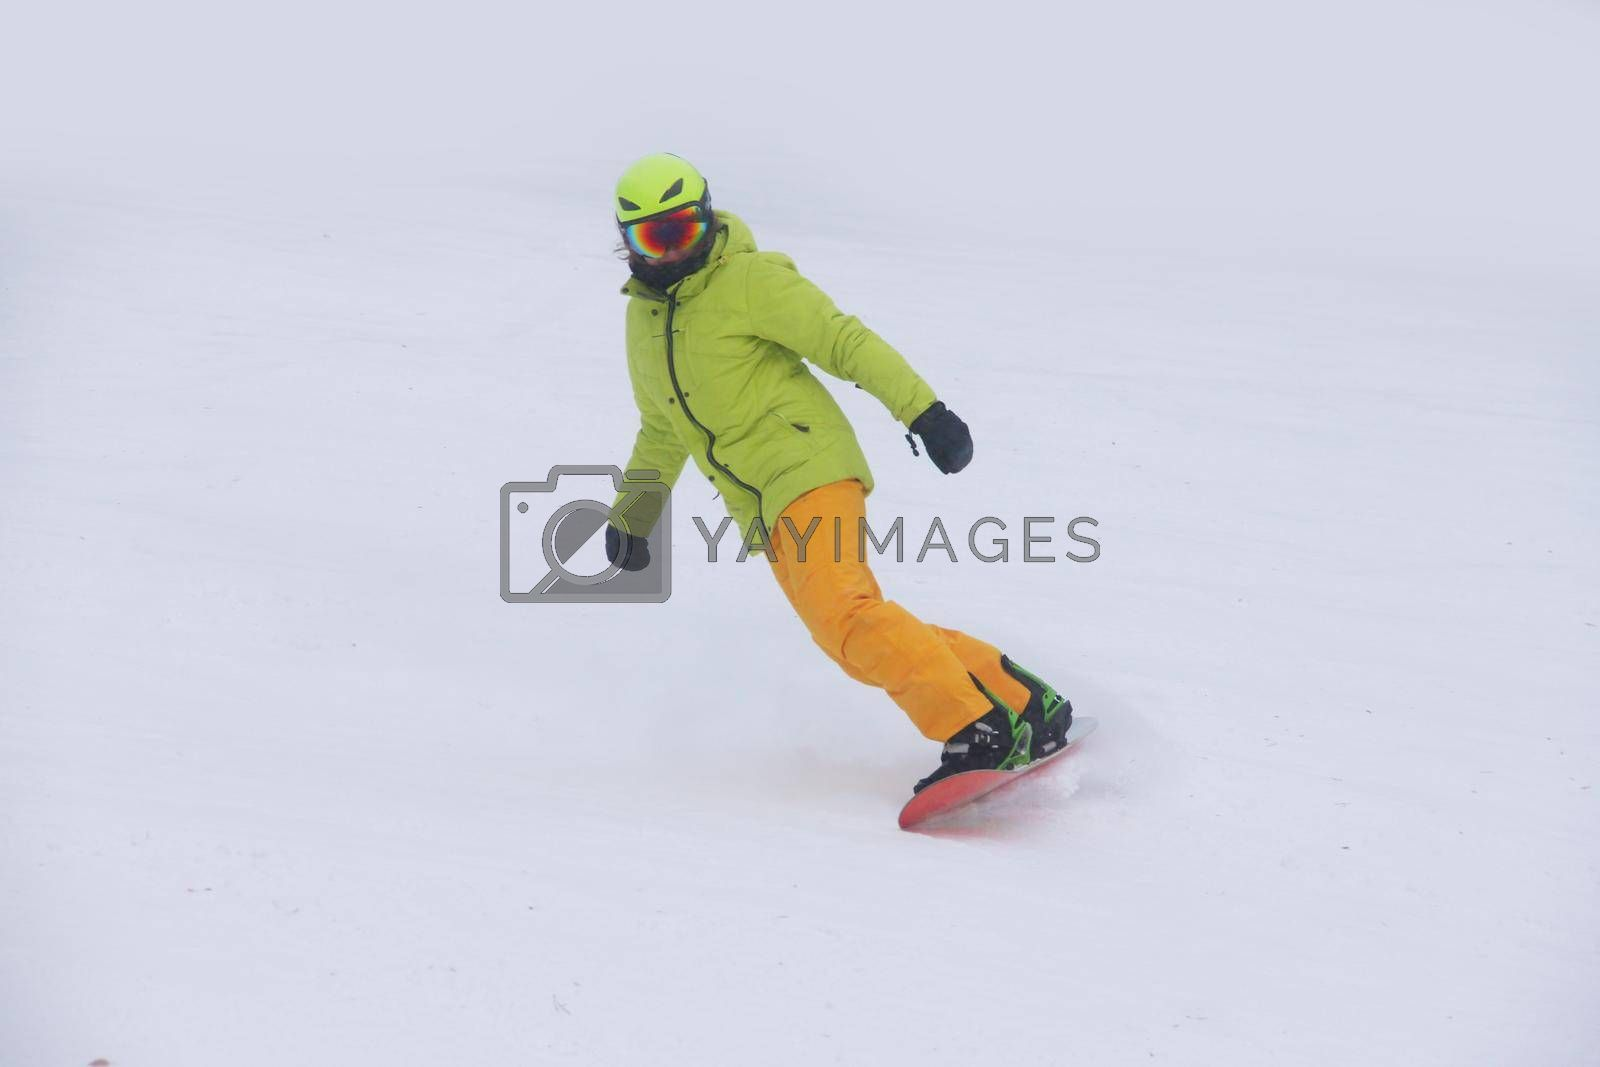 Woman snowboarder on the slopes frosty winter day. Girl on snowboard in the snow